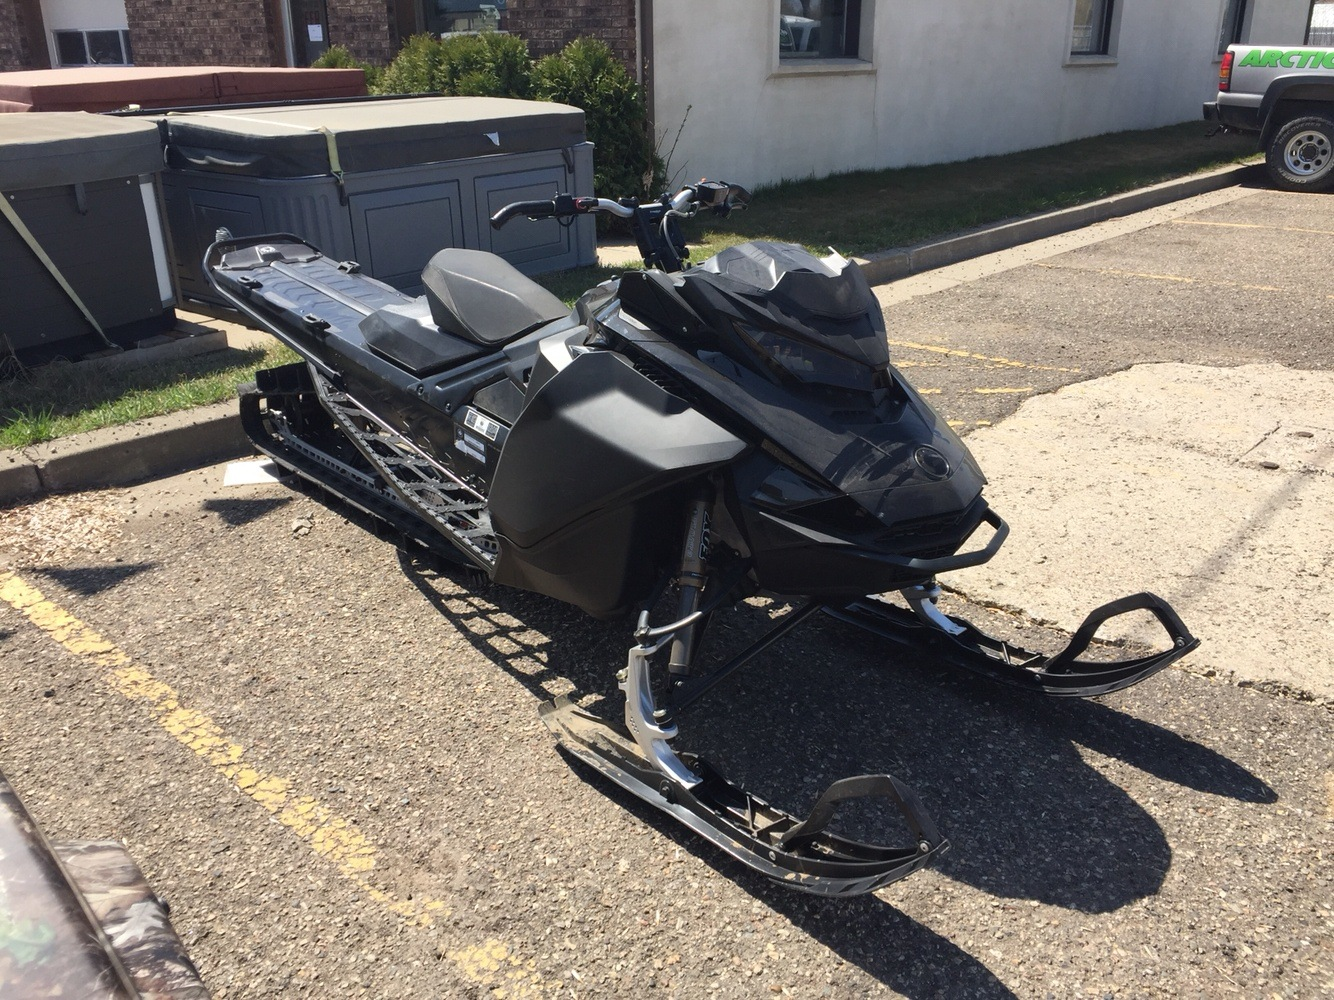 2017 Ski-Doo Summit X 165 850 E-TEC, PowderMax 3.0 in. in Bismarck, North Dakota - Photo 1